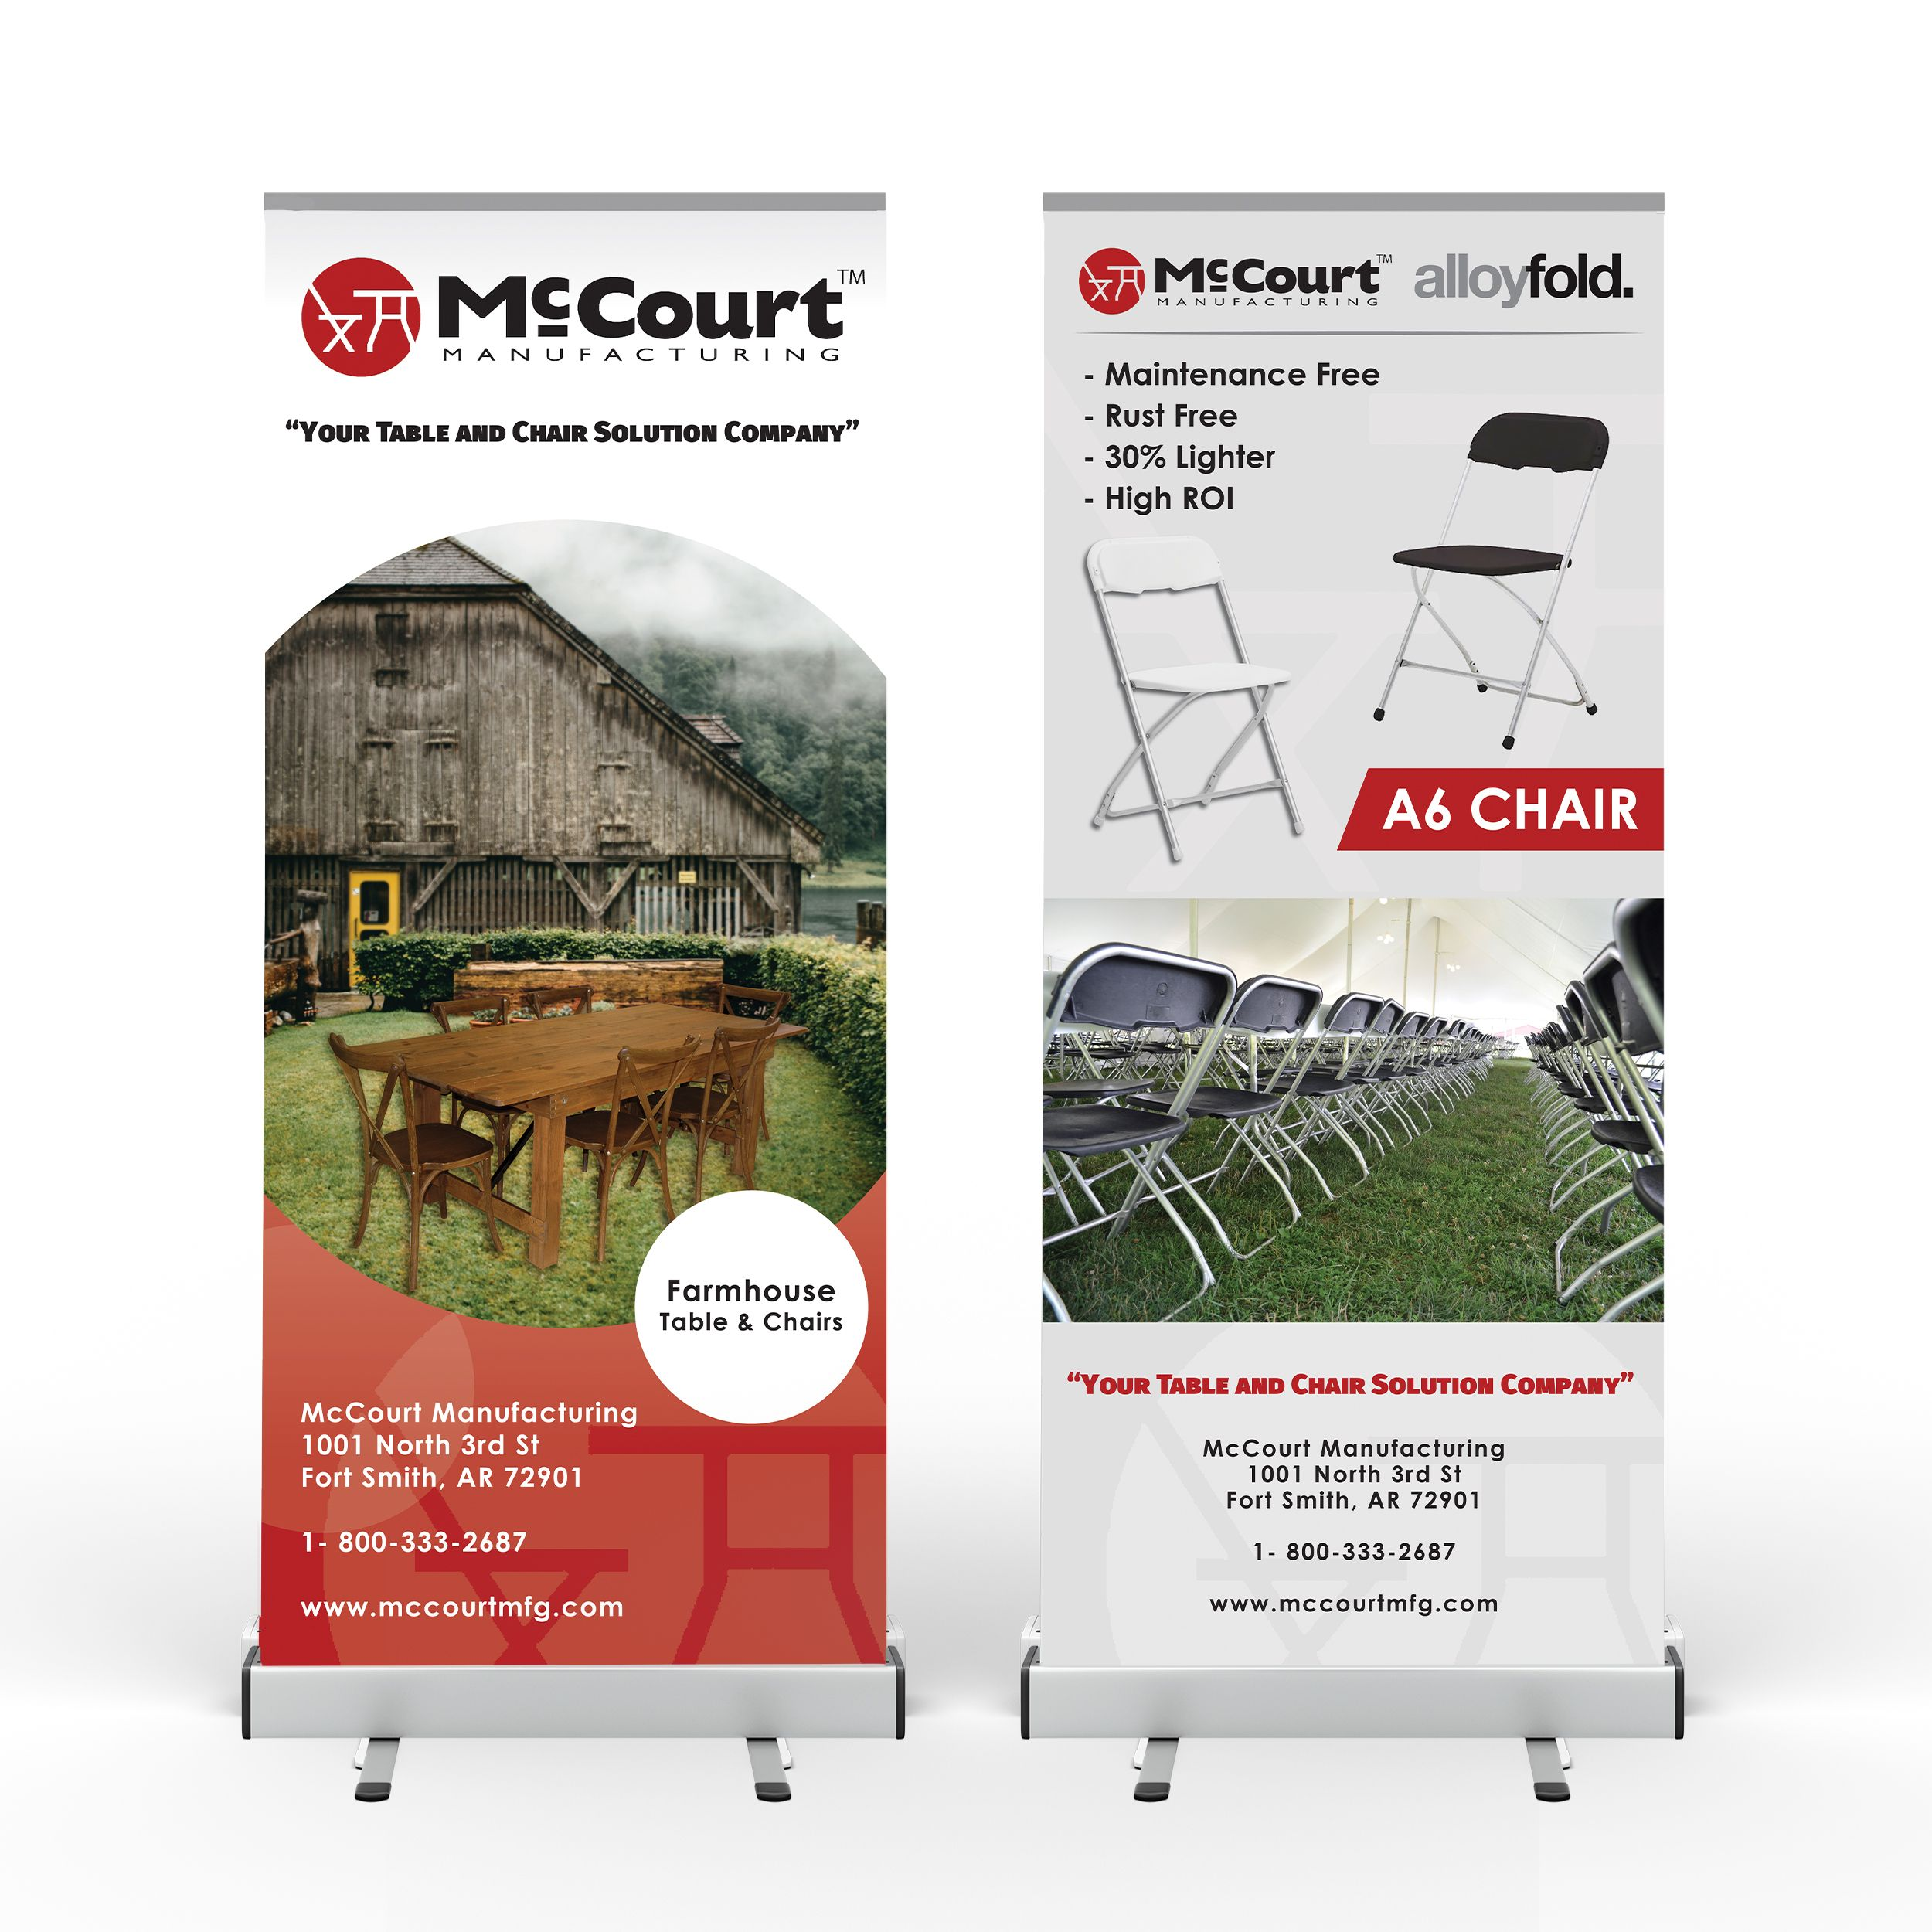 McCourt Roll-Up Banners